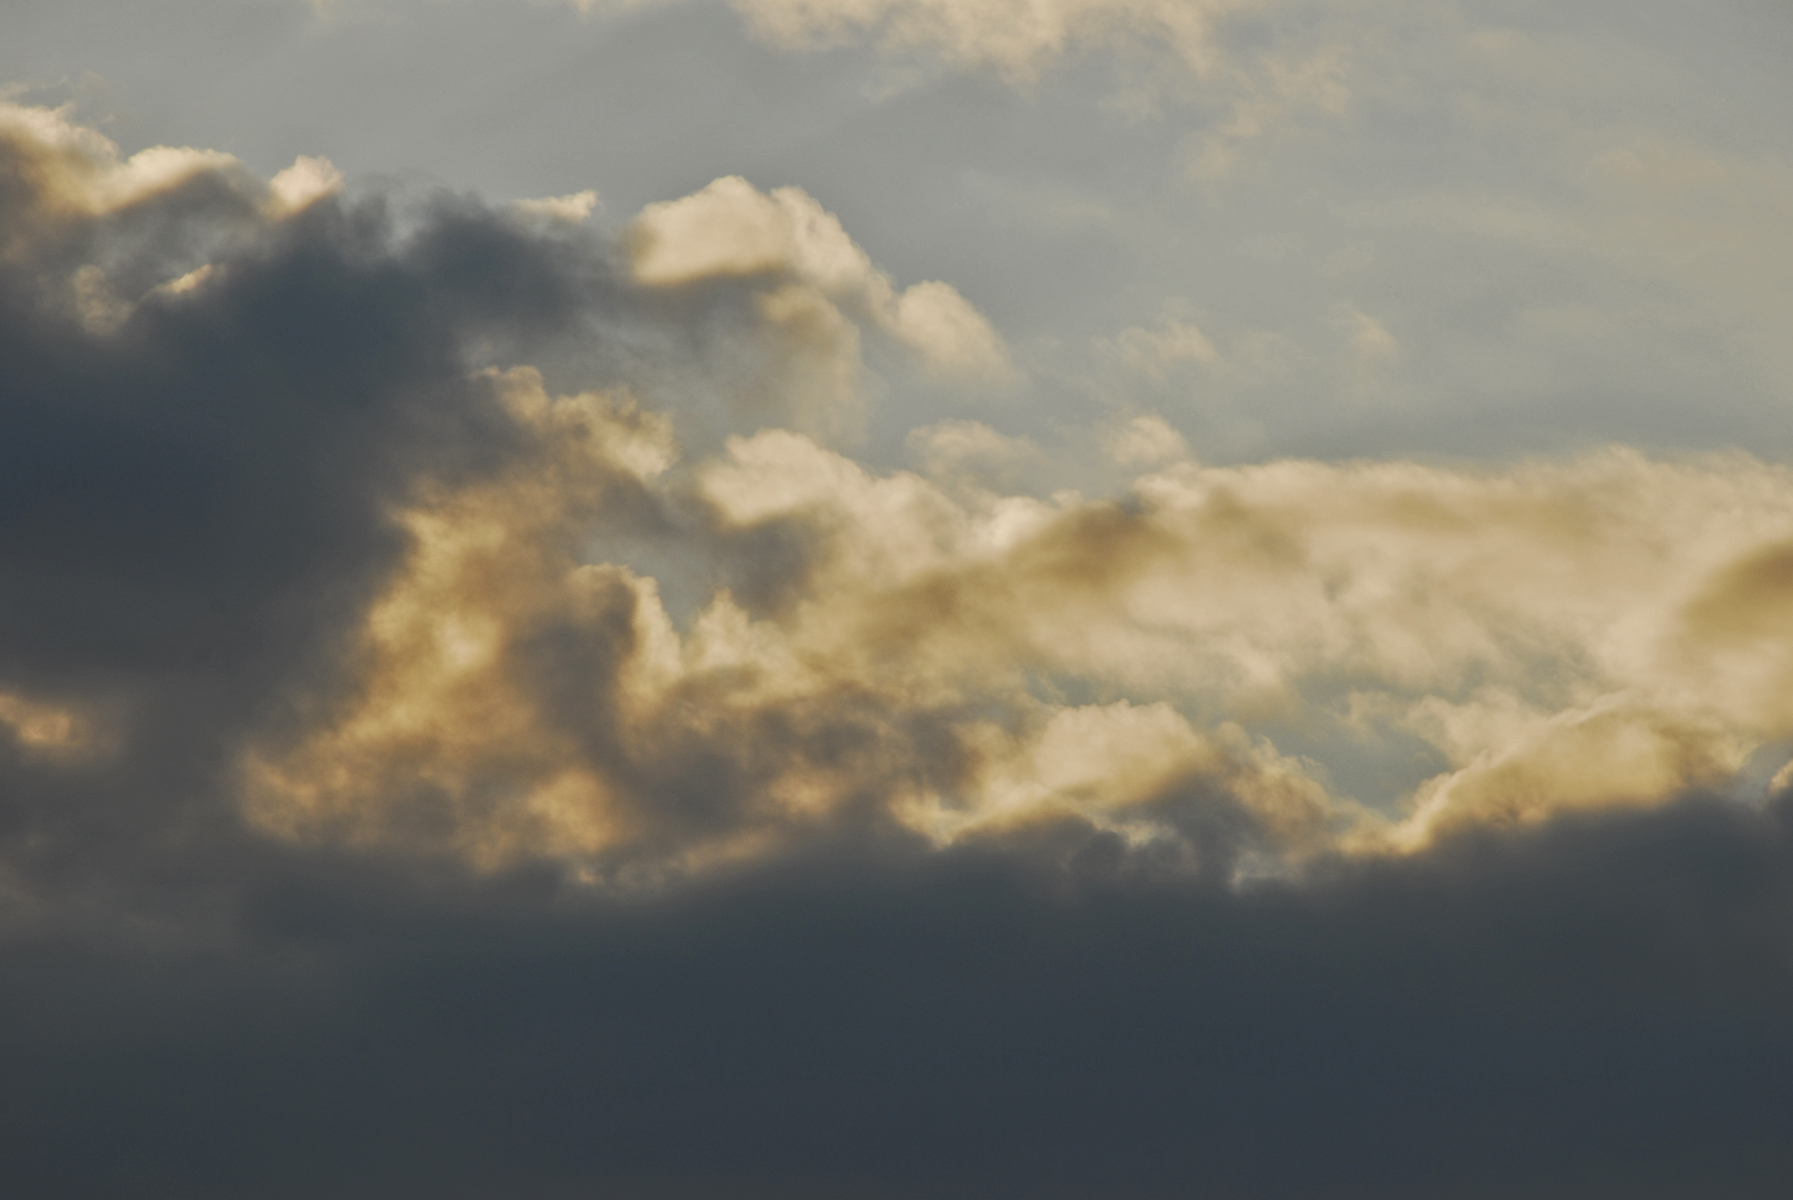 Early Morning Rain Clouds (Image 6 of 7), Billowing, Blowing, Bspo06, Cloud, HQ Photo